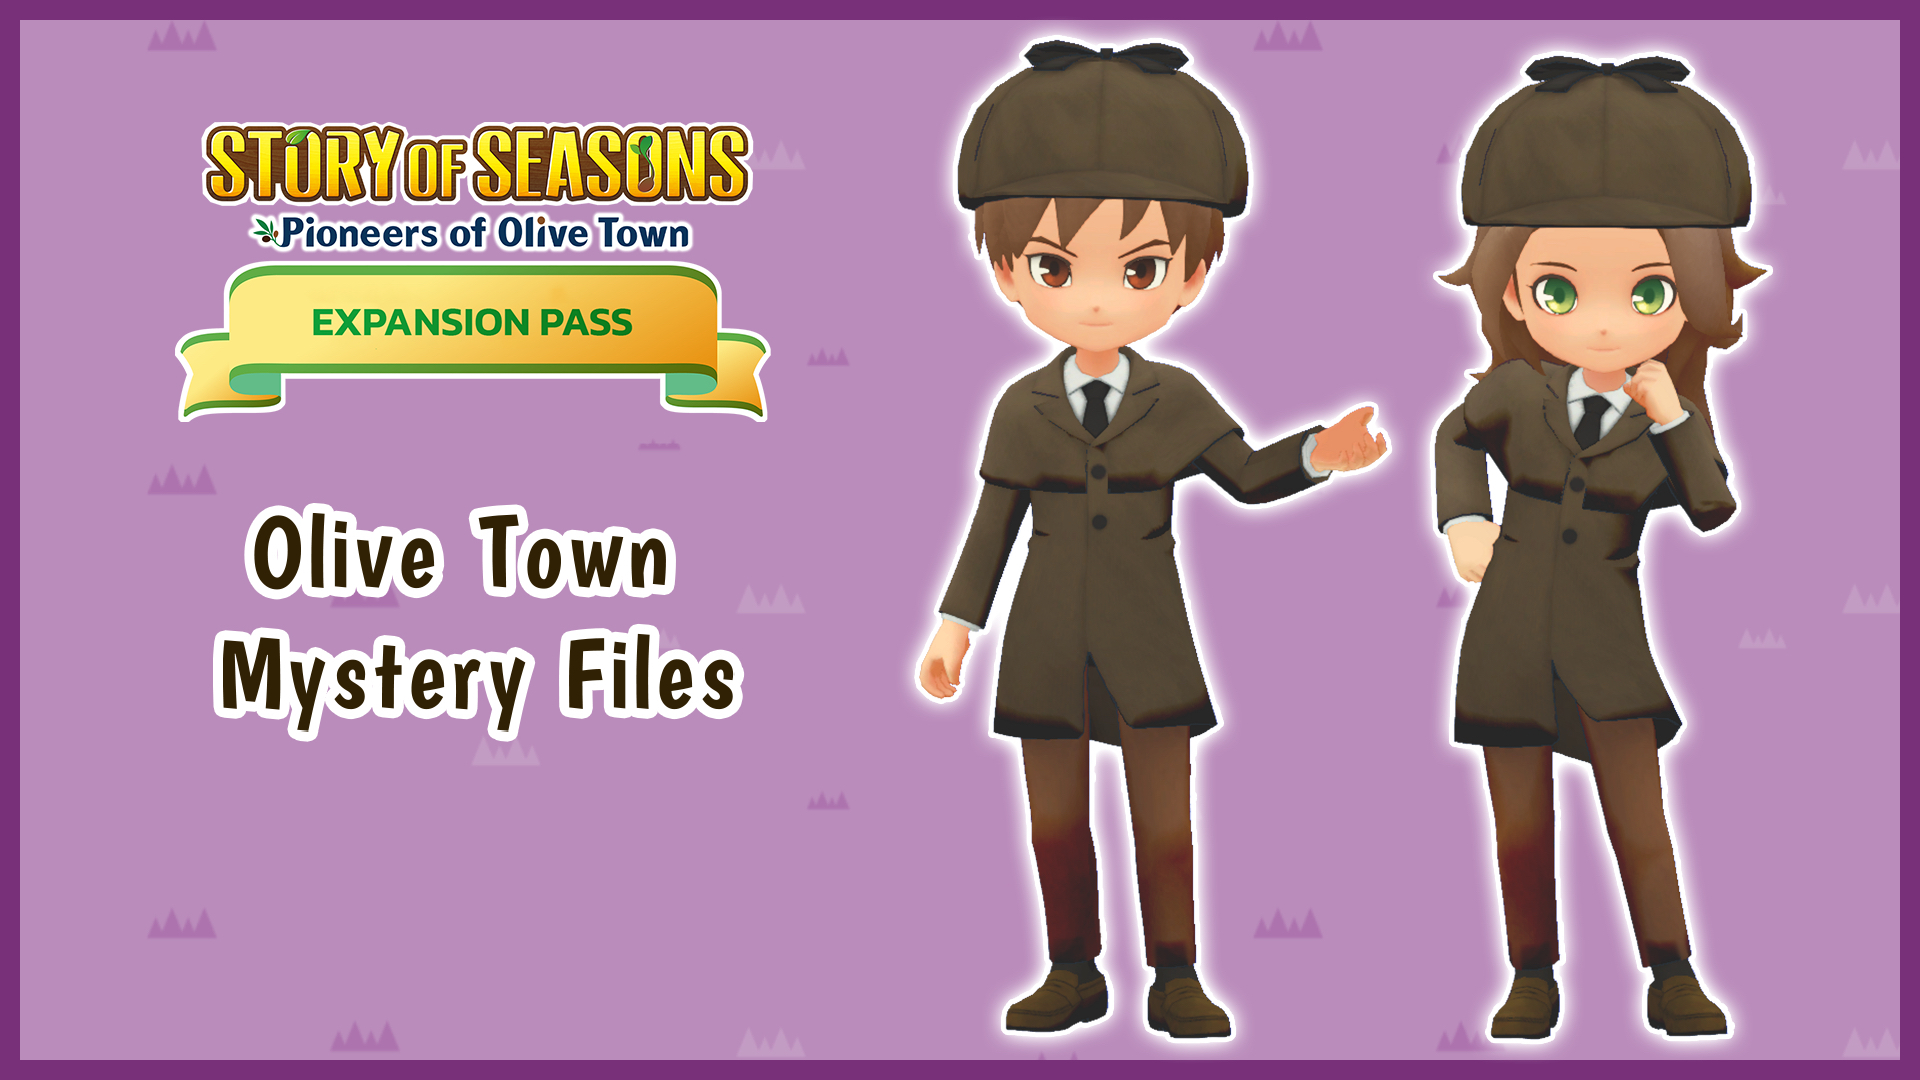 Olive Town Mystery Files